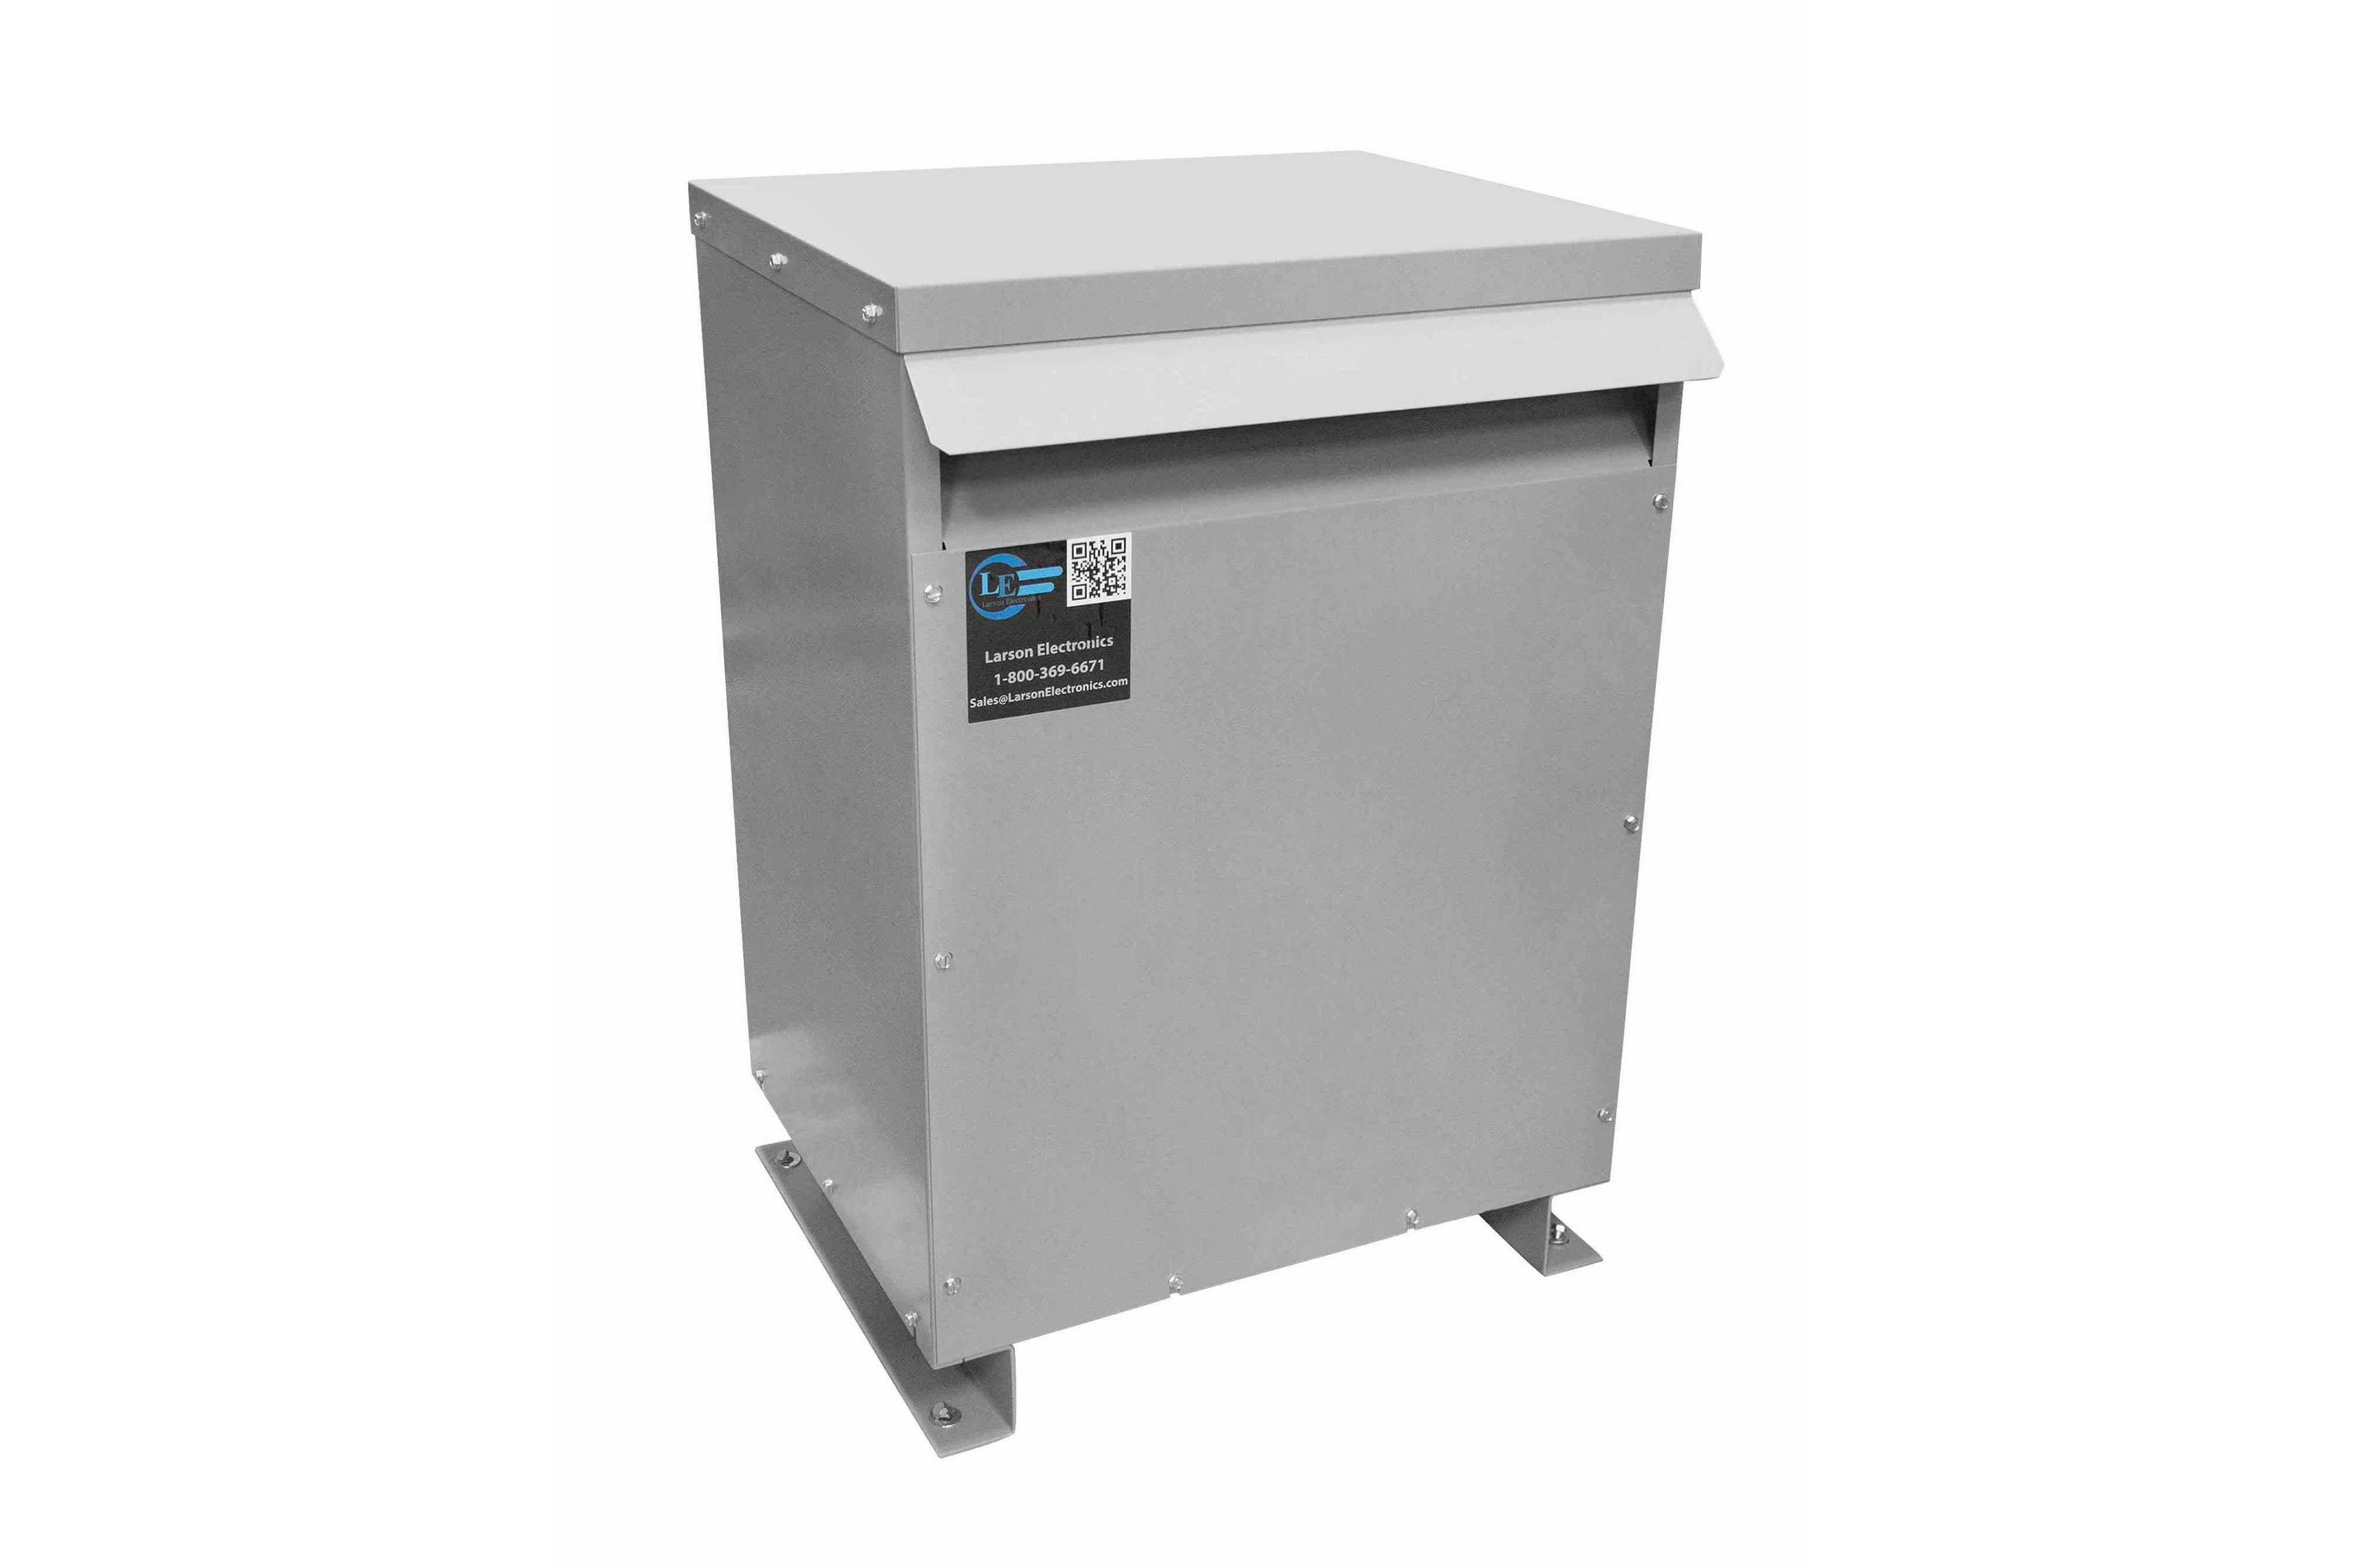 15 kVA 3PH Isolation Transformer, 400V Delta Primary, 208V Delta Secondary, N3R, Ventilated, 60 Hz